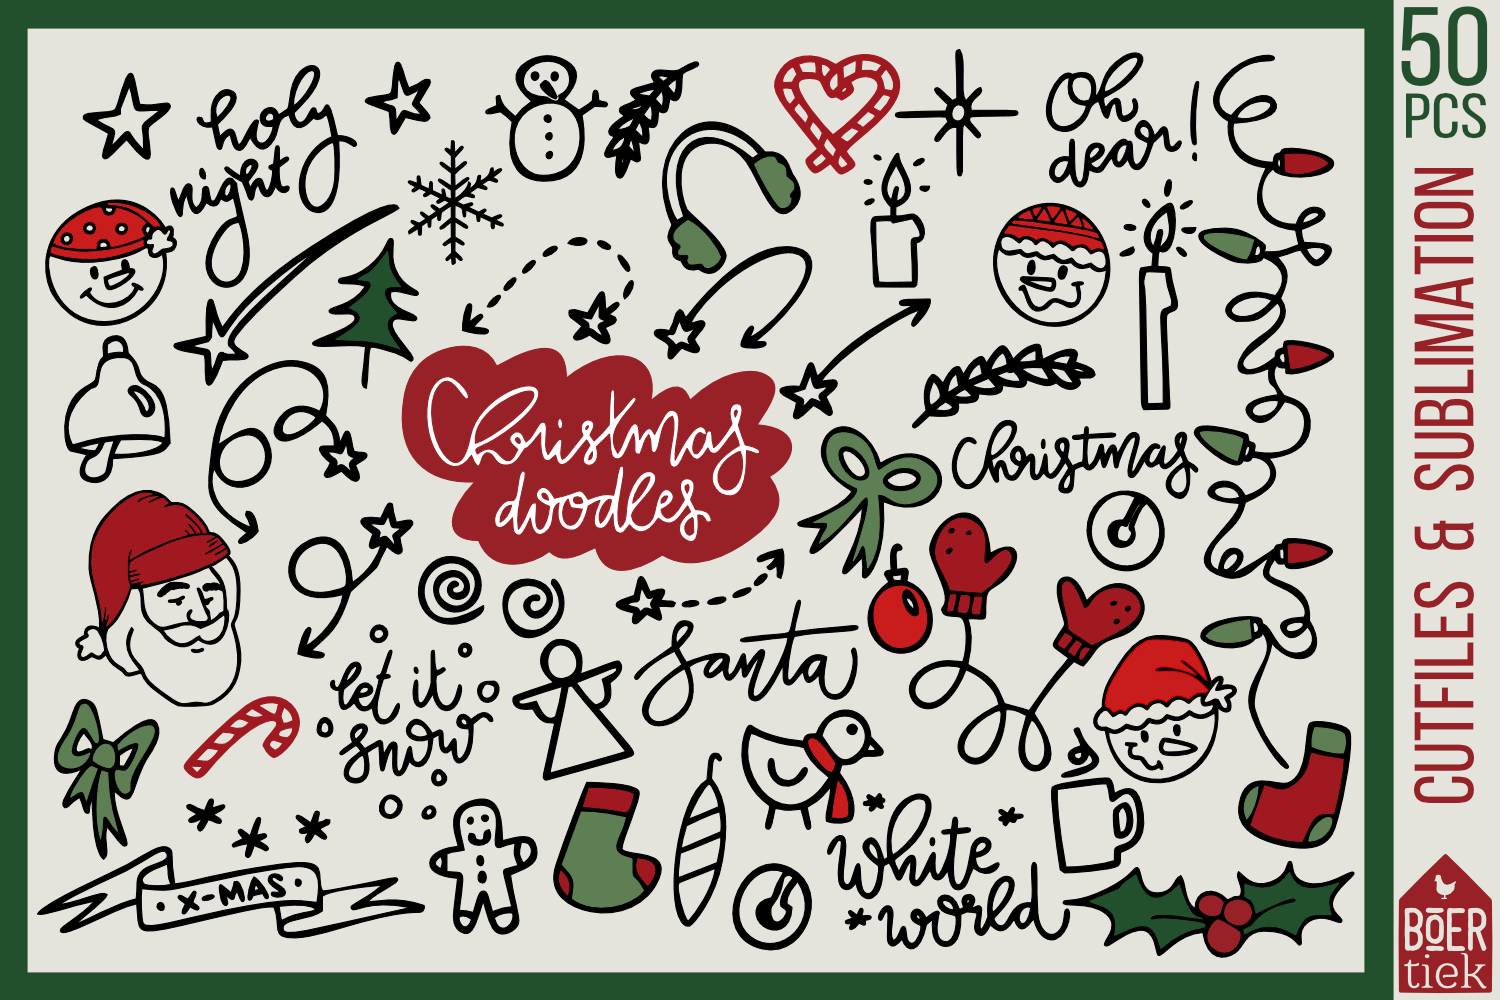 50 hand-drawn Christmas doodles, cutfiles and sublimation example image 1